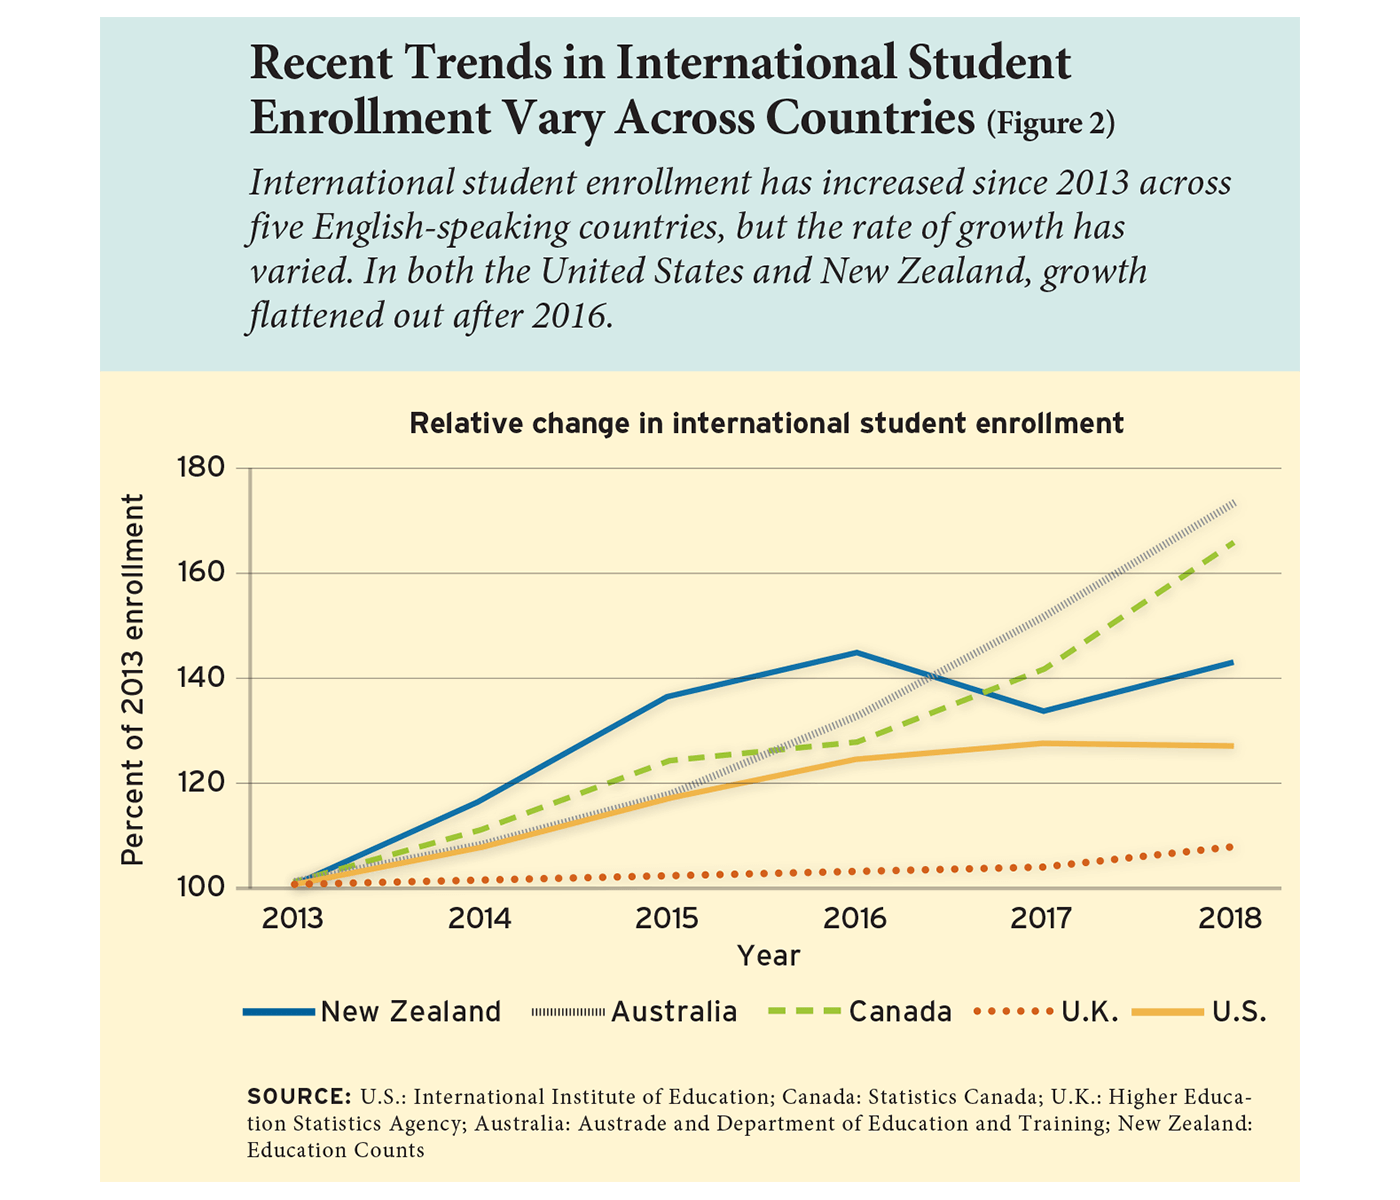 Recent Trends in International Student Enrollment Vary Across Countries (Figure 2)